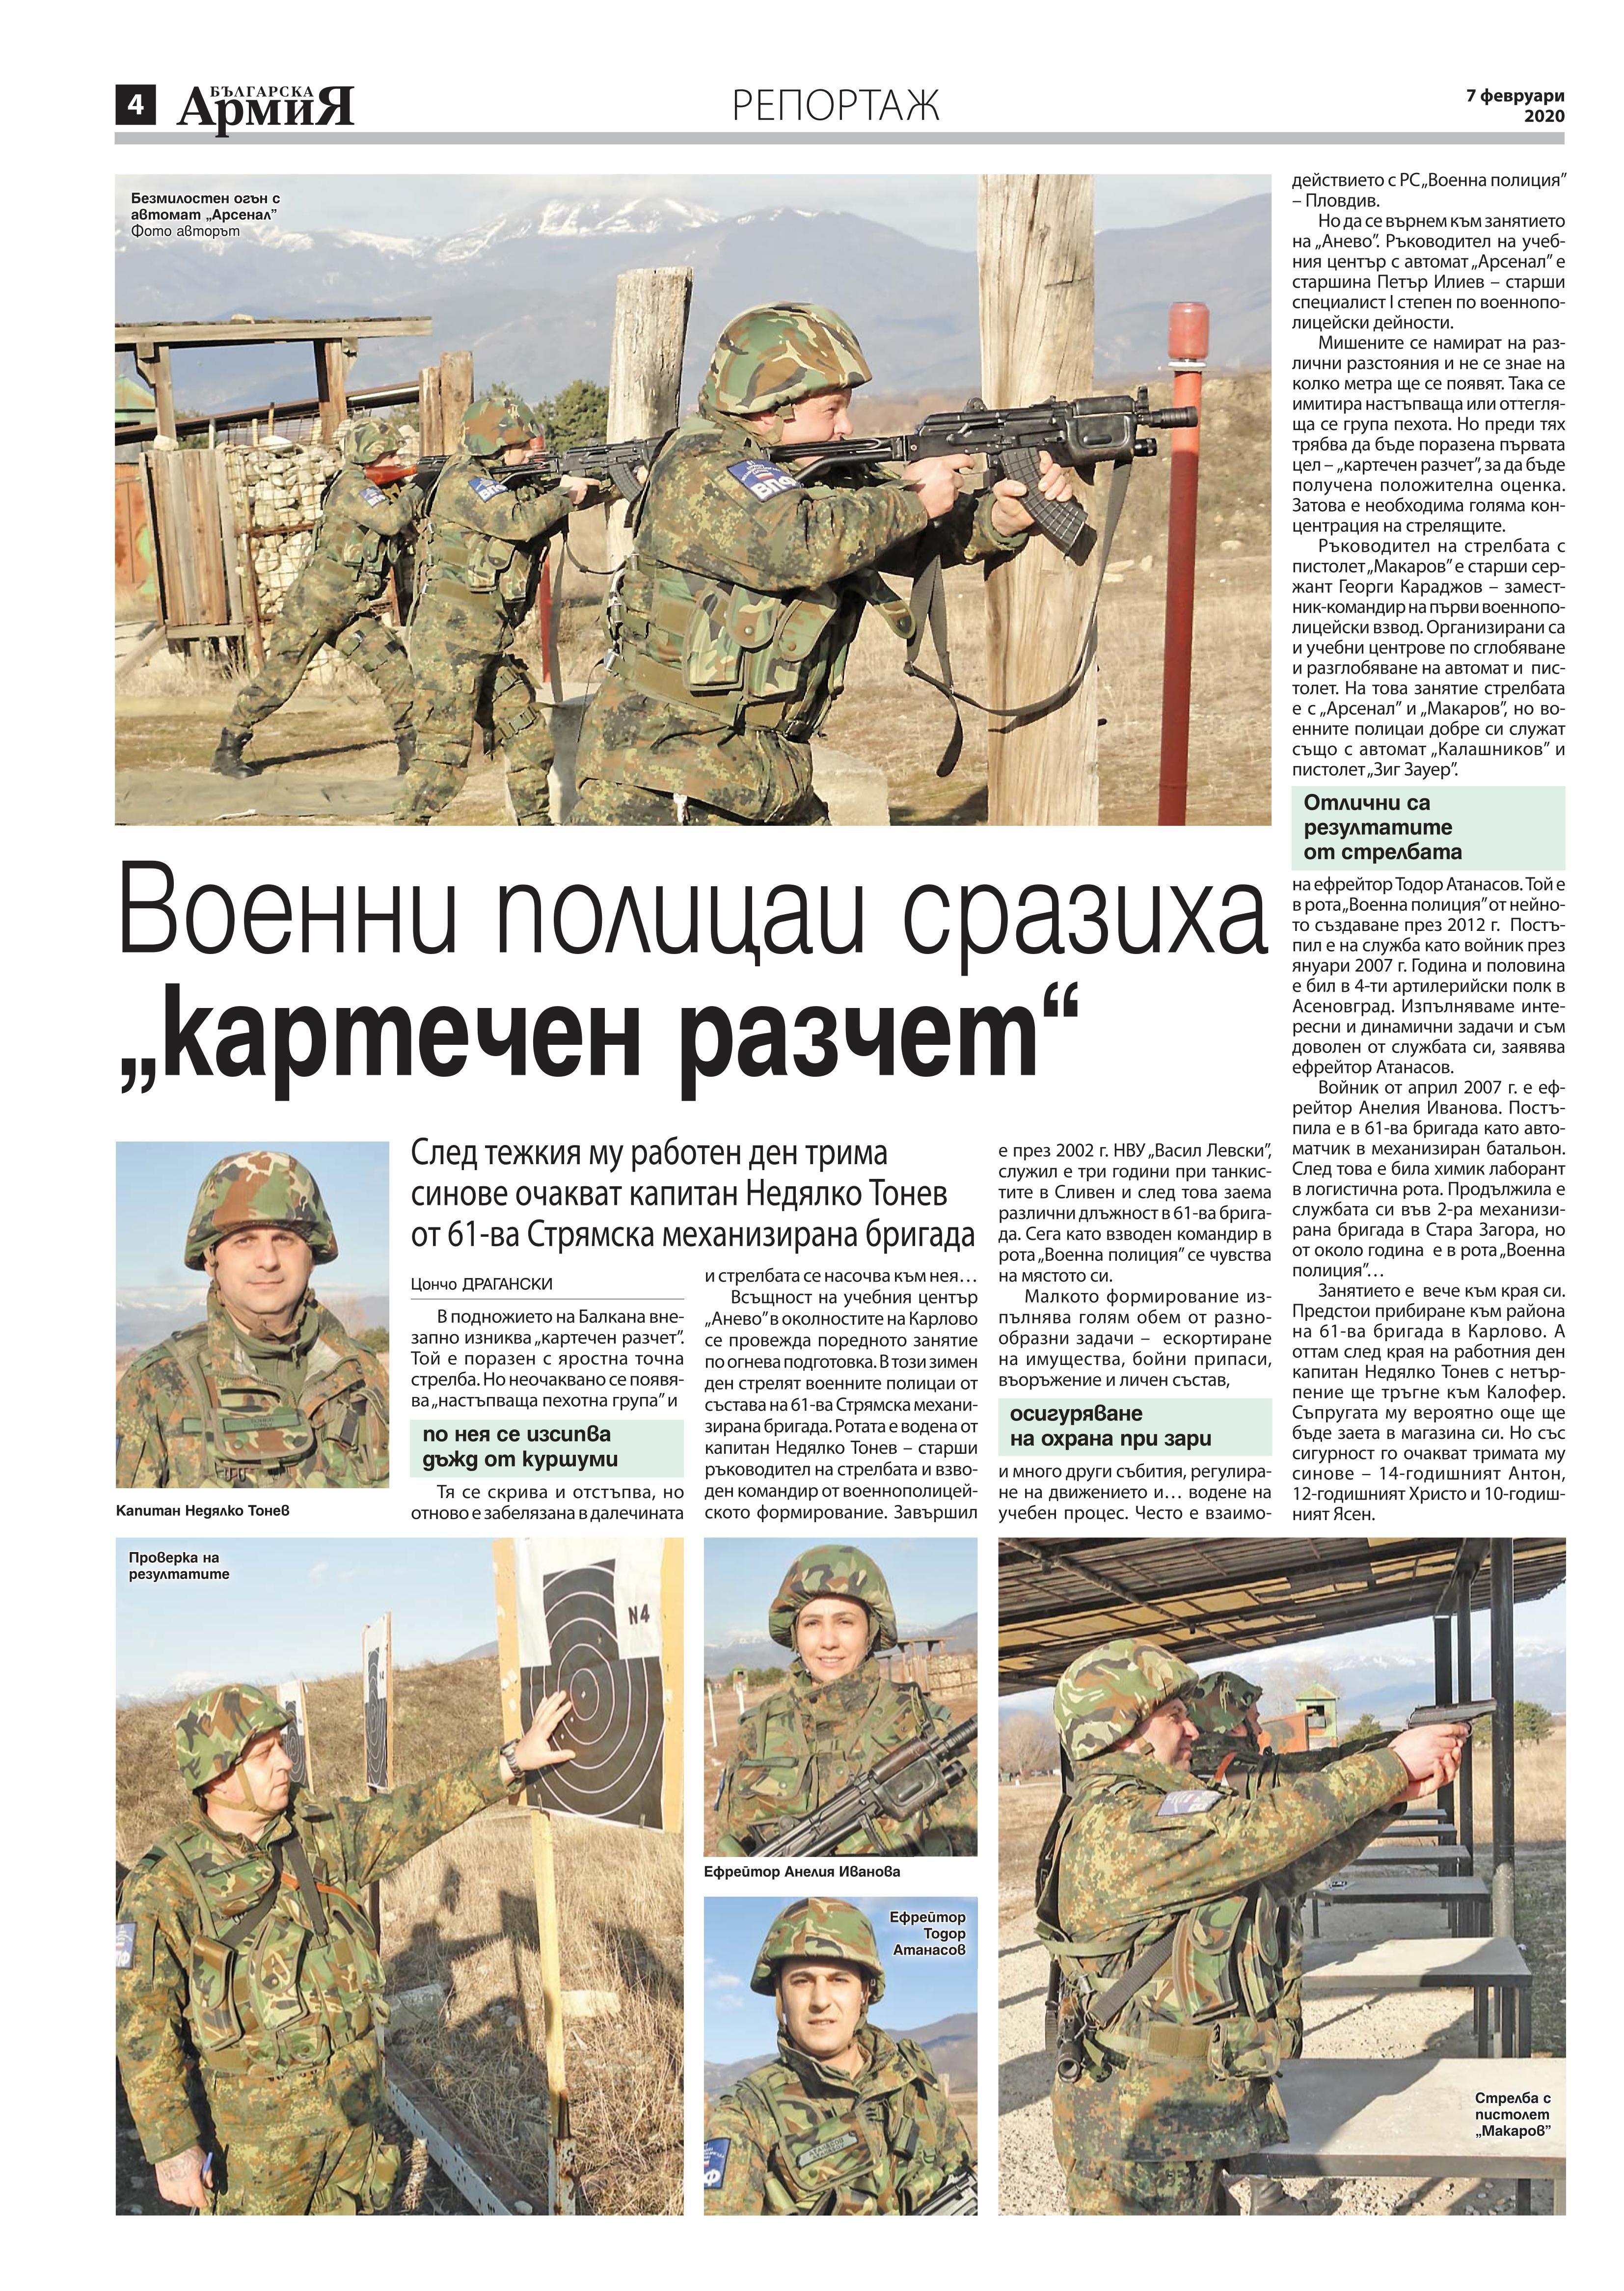 https://www.armymedia.bg/wp-content/uploads/2015/06/04.page1_-122.jpg